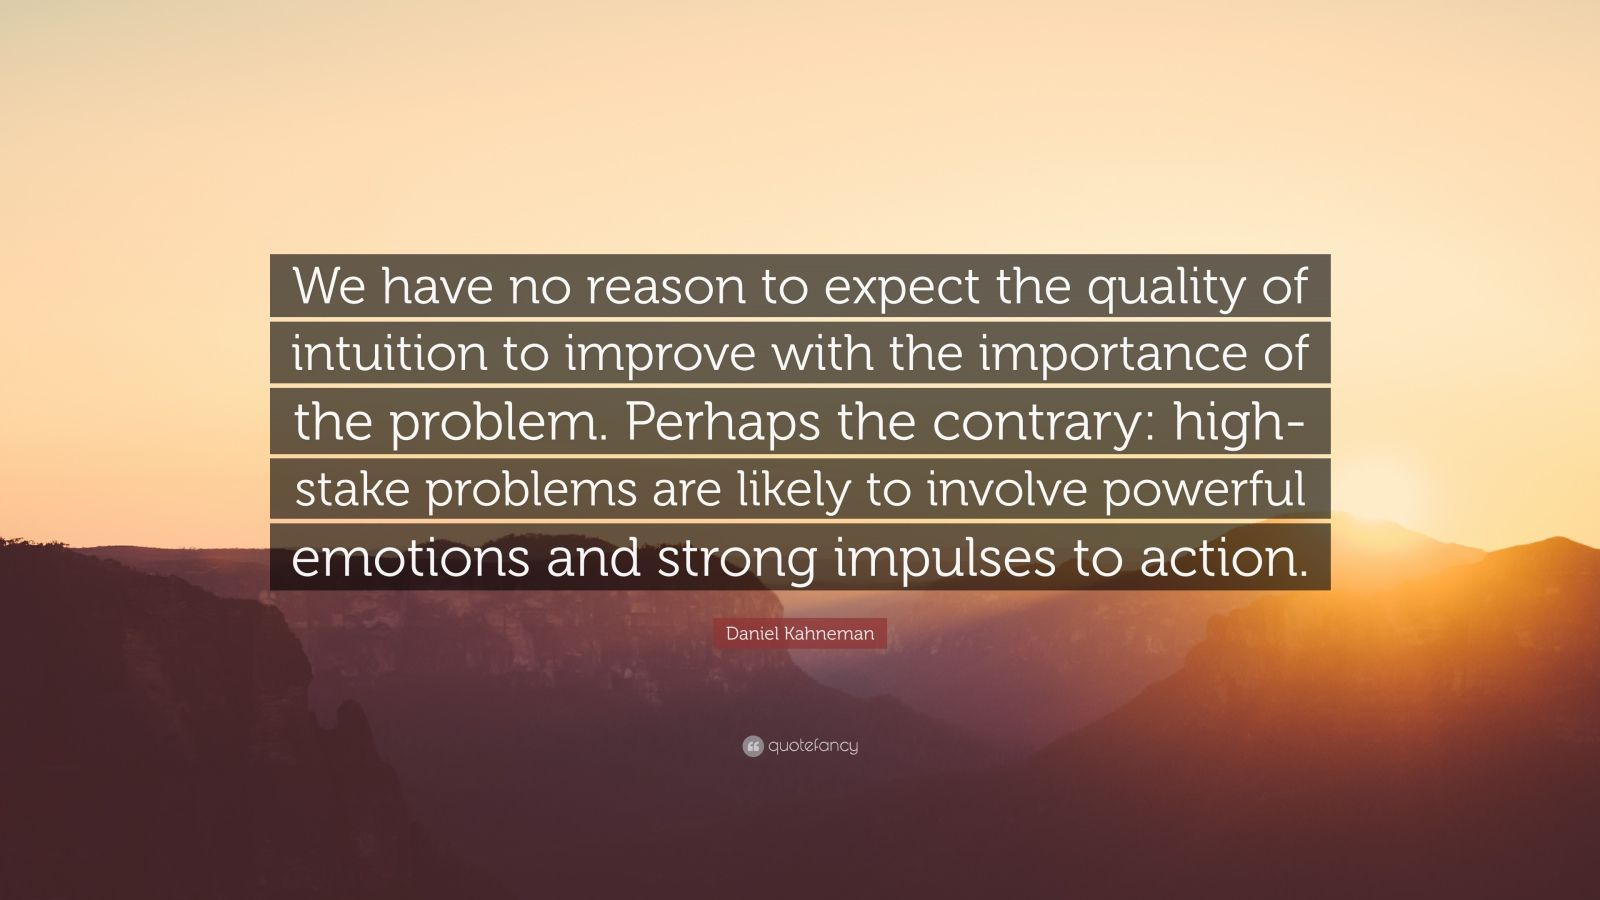 "Daniel Kahneman Quote: ""We have no reason to expect the quality of intuition to improve with the importance of the problem. Perhaps the contrary: high-stake problems are likely to involve powerful emotions and strong impulses to action."""